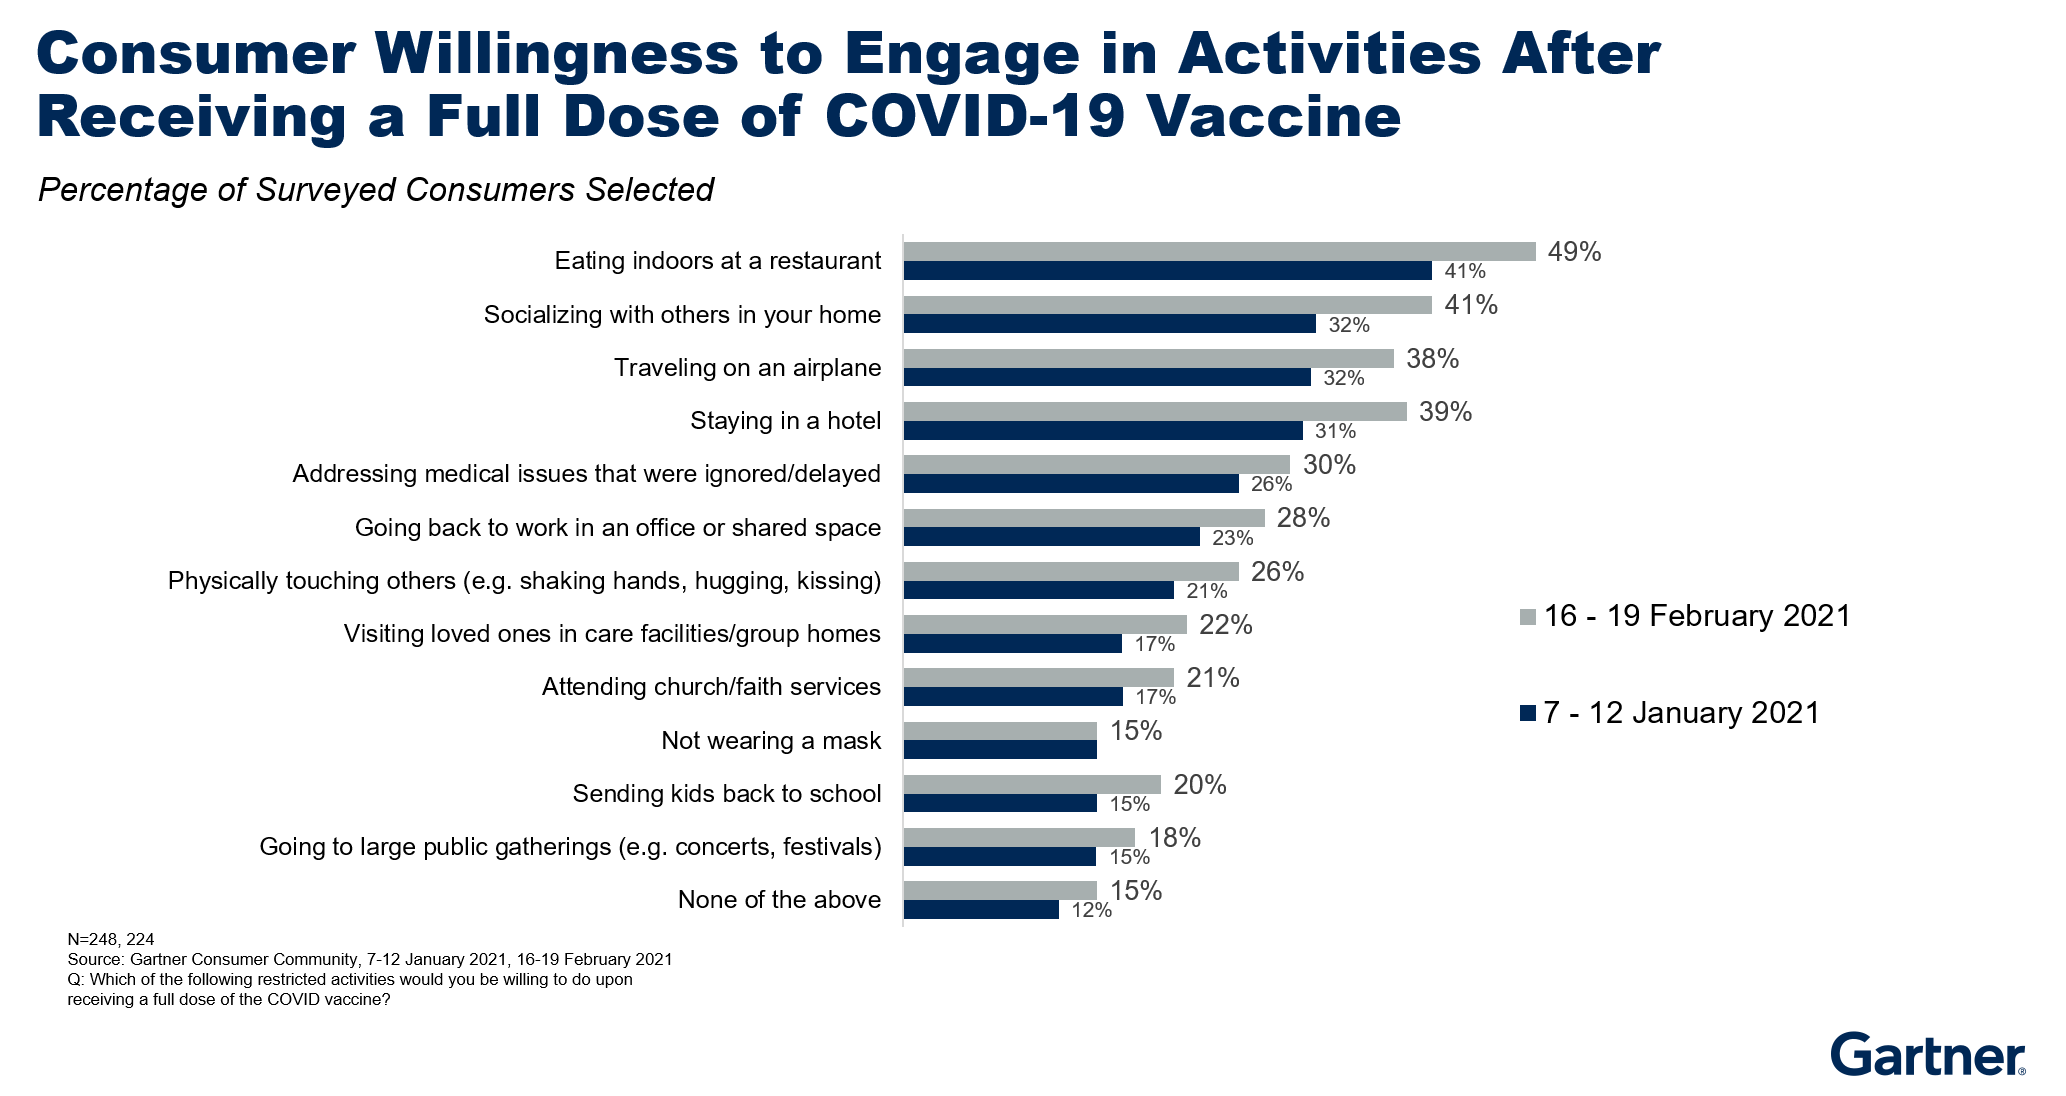 Figure 2. Consumer Willingness to Engage in Activities After Receiving a Full Dose of COVID-19 Vaccine